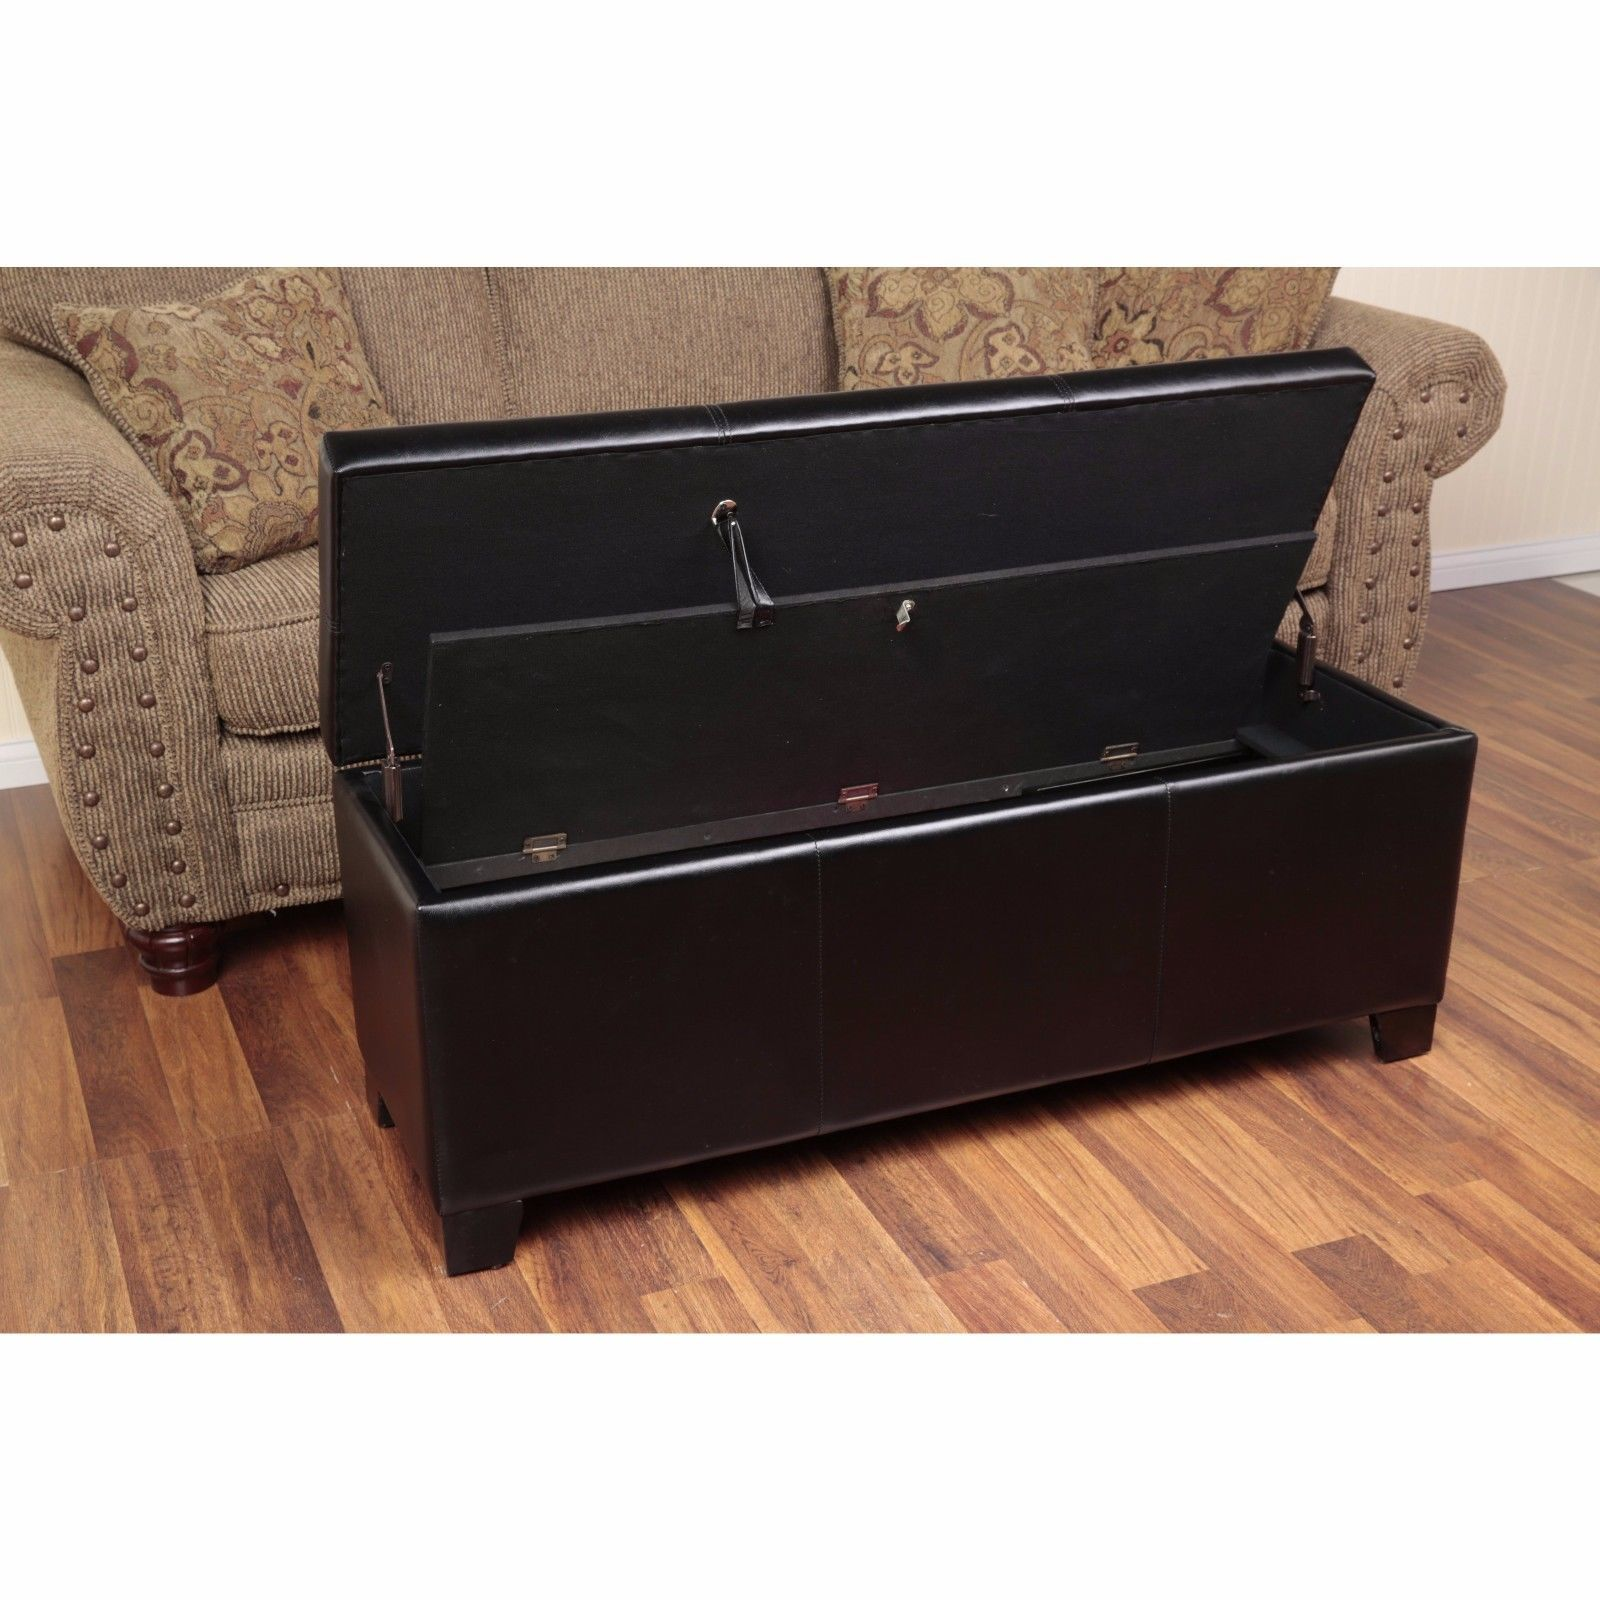 Gun concealment furniture locking storage bench firearm for Room furniture organizer